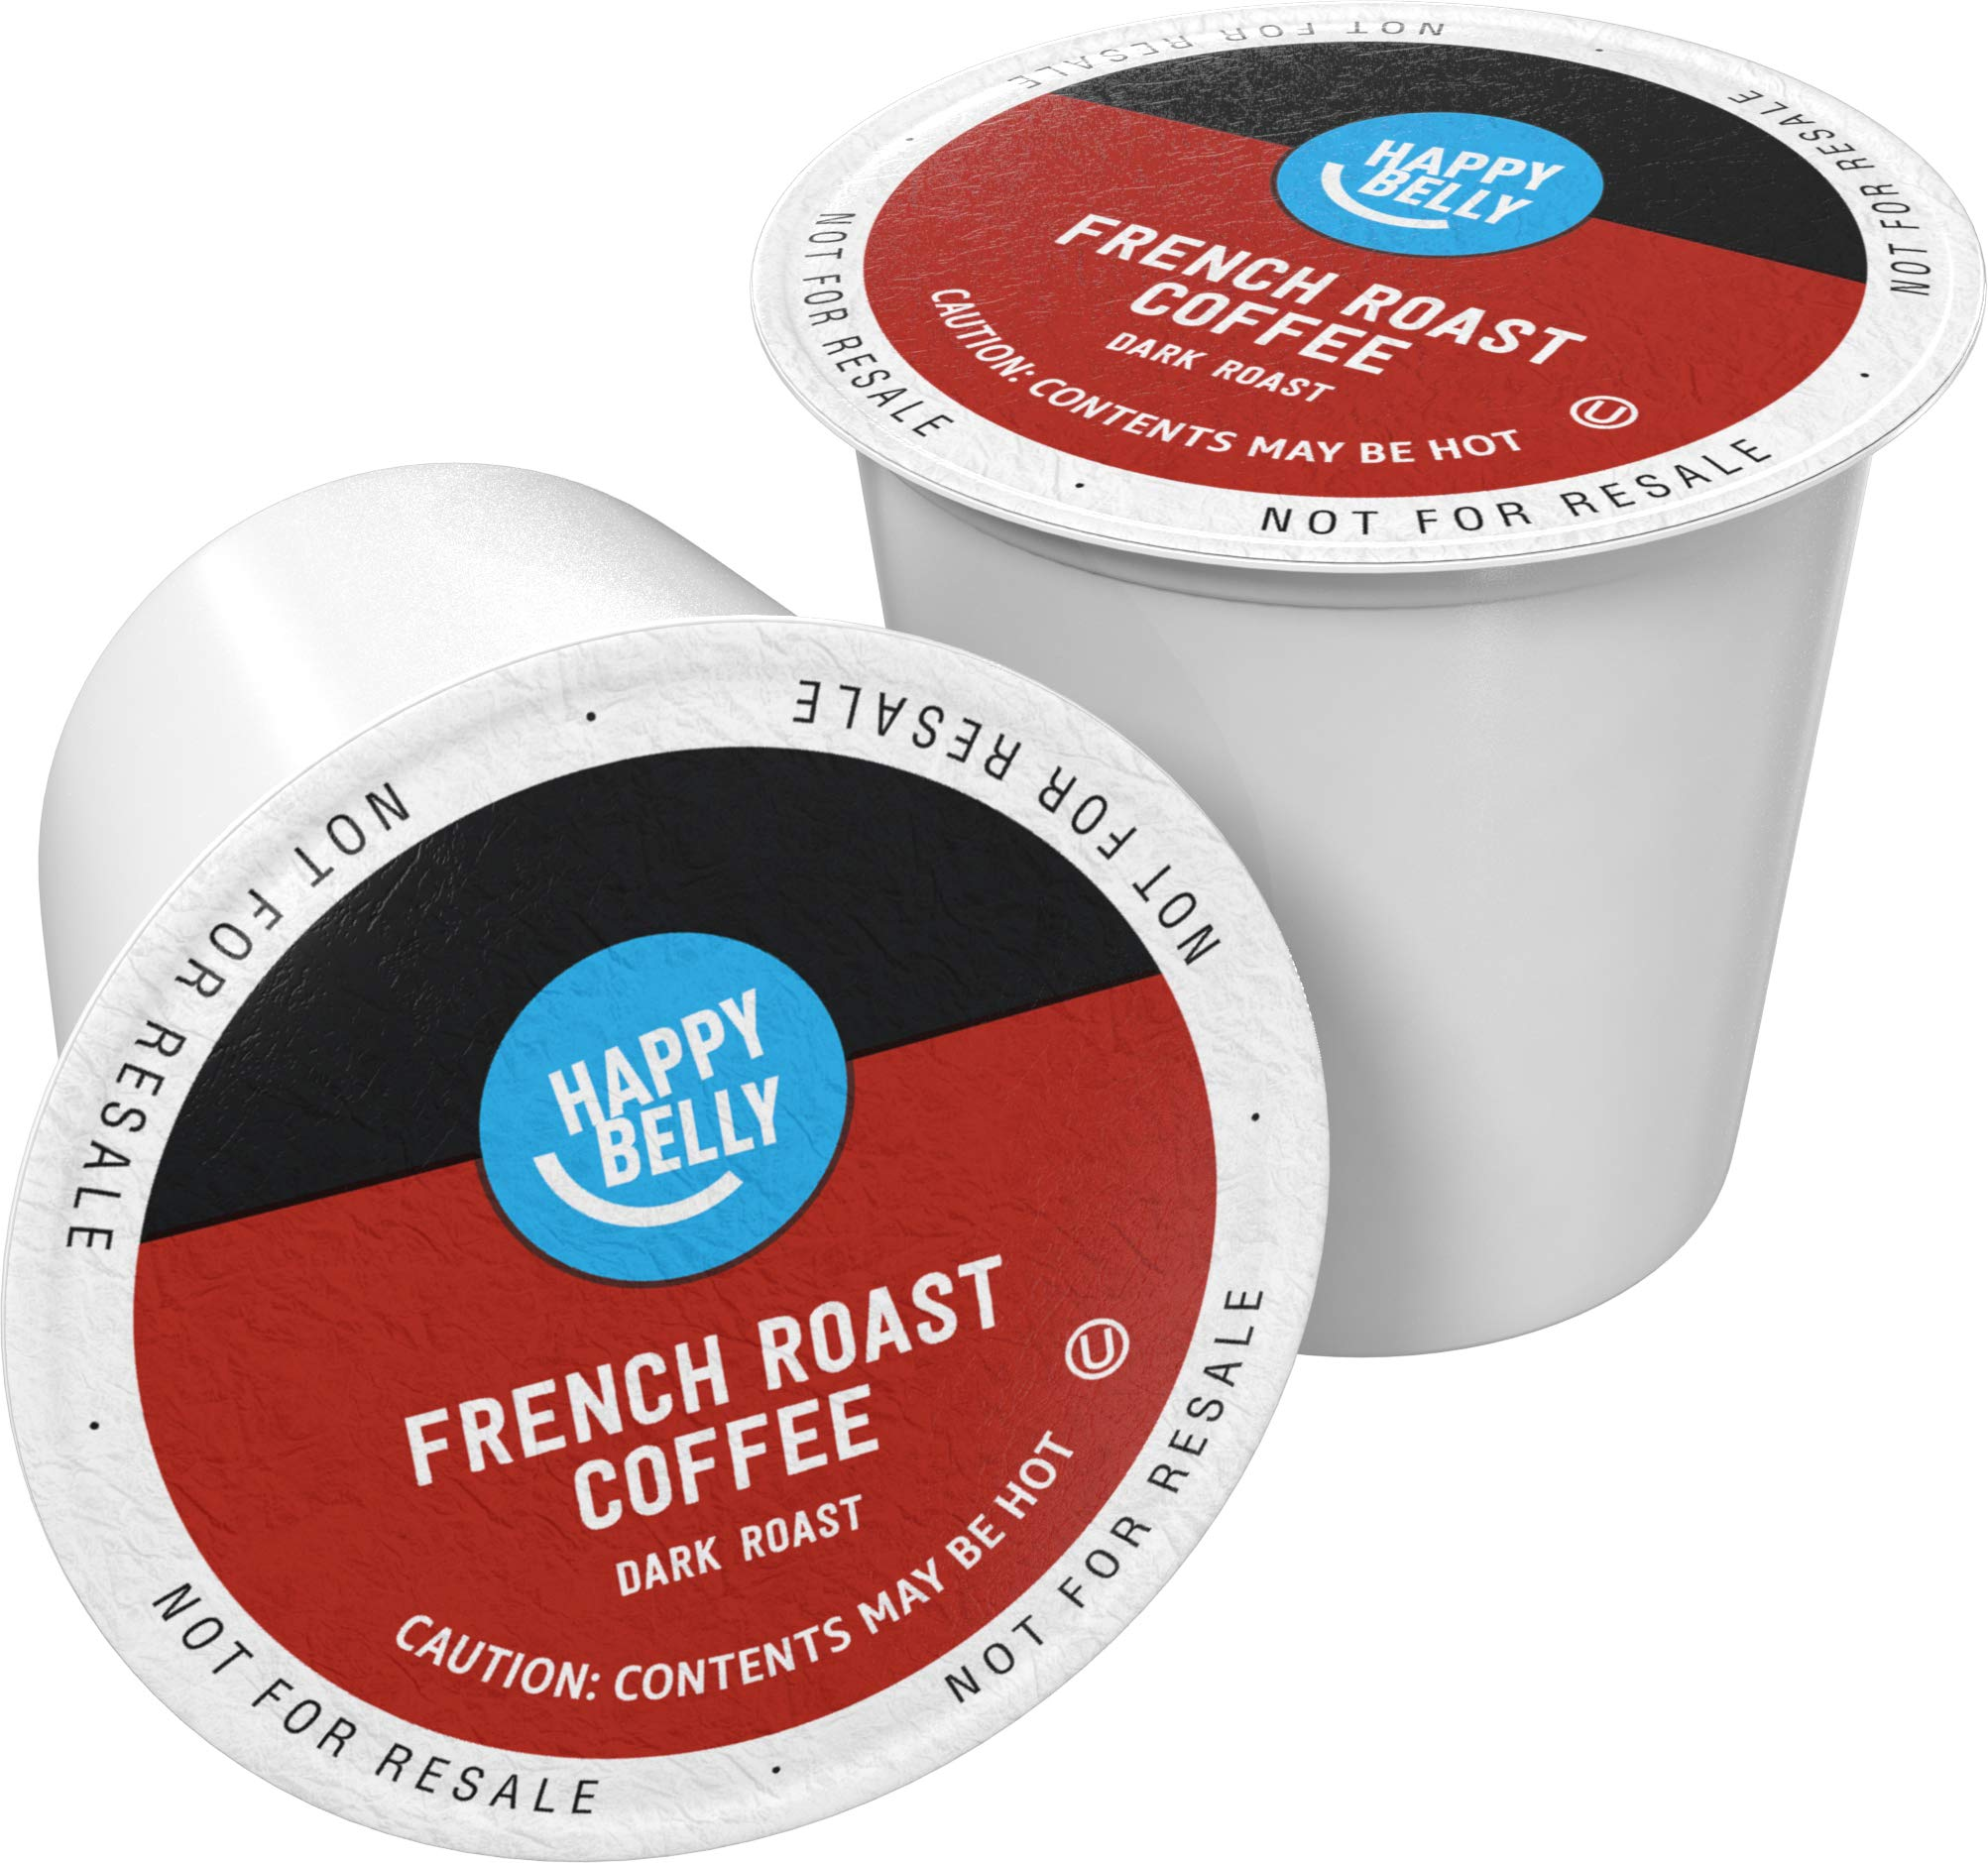 Amazon Brand - 100 Ct. Happy Belly Dark Roast Coffee Pods, French Roast, Compatible with Keurig 2.0 K-Cup Brewers